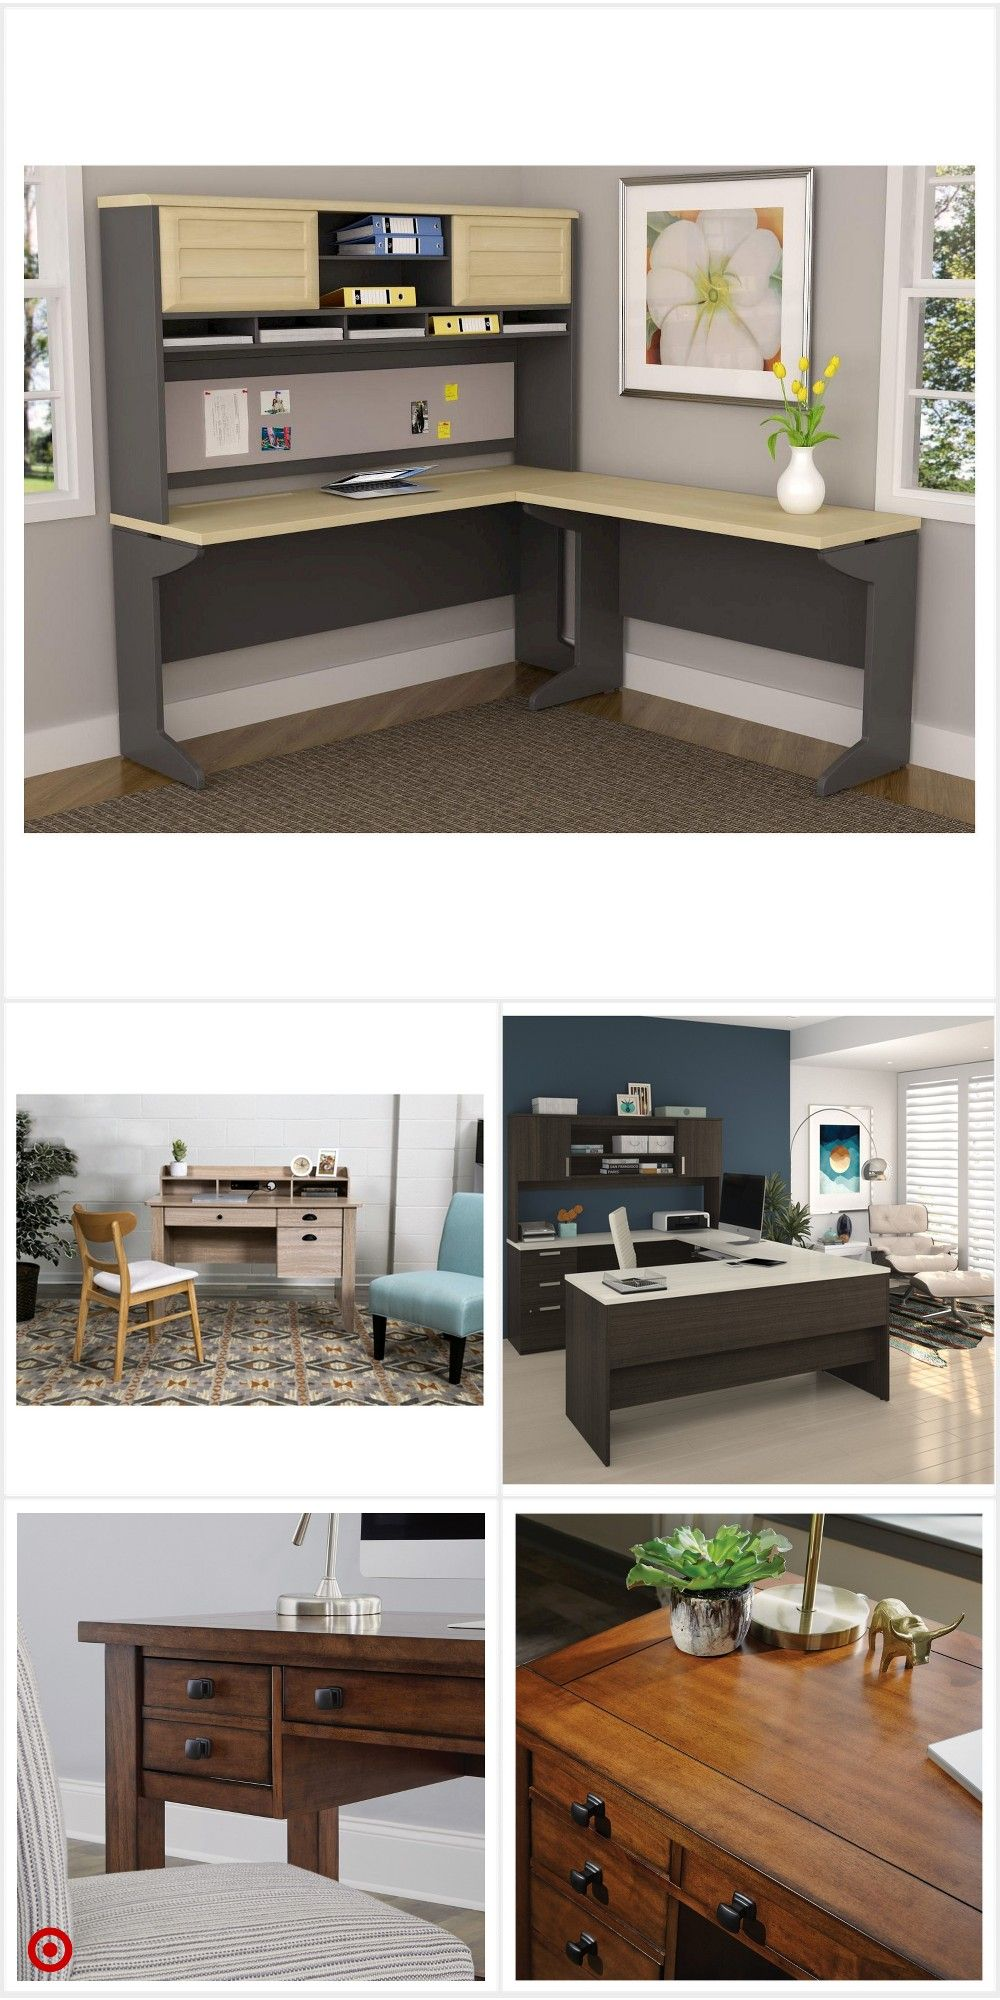 Shop Target For Executive Desk You Will Love At Great Low Prices Free Shipping On Orders Of 35 Or Free Same Home Office Setup Home Decor Home Office Design